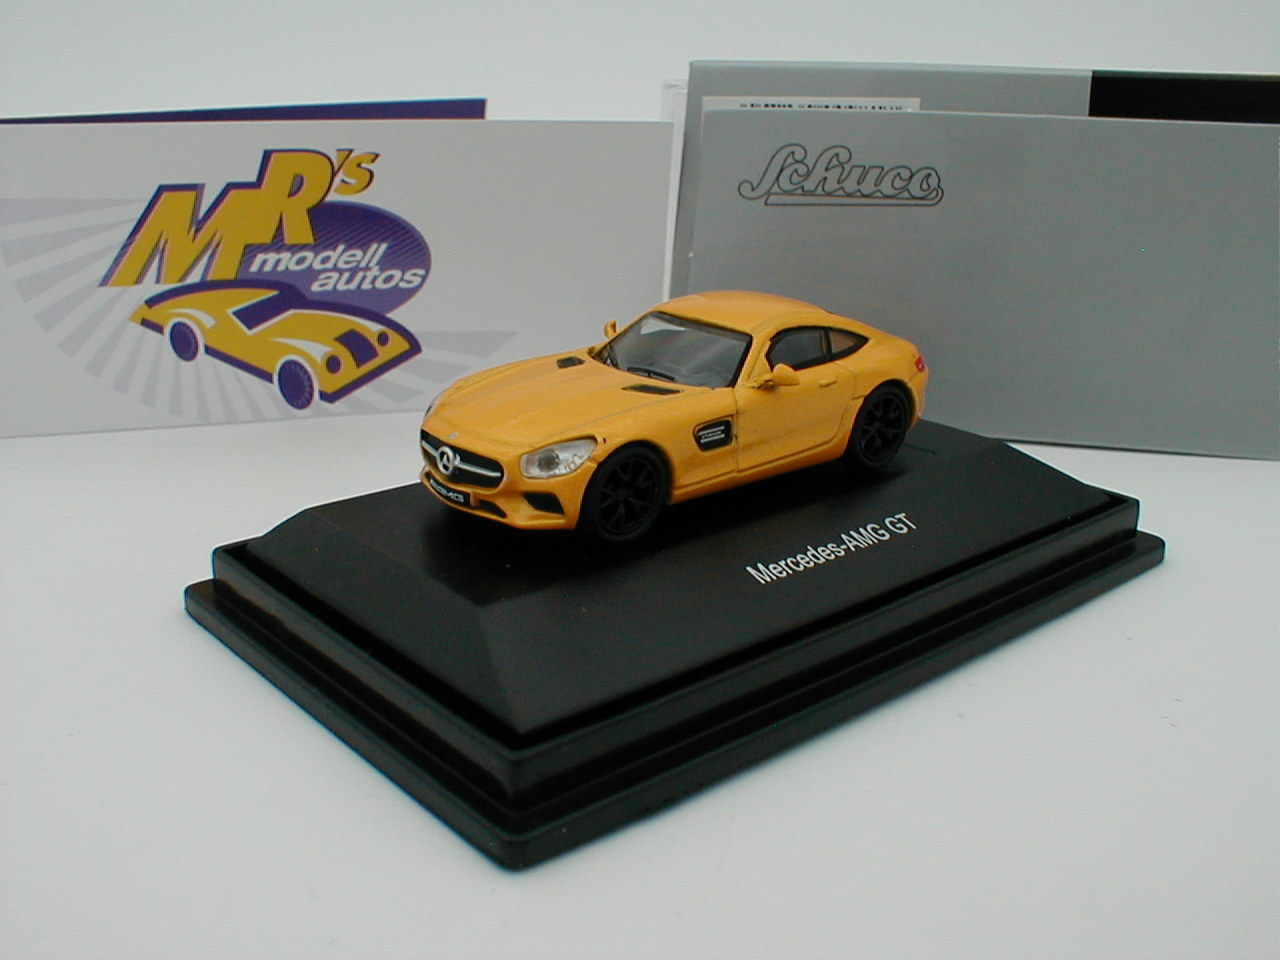 Schuco 26342 26342 26342 - Mercedes Benz AMG GT Baujahr 2016 in   yellowmetallic   1 87 NEU    ba1f95